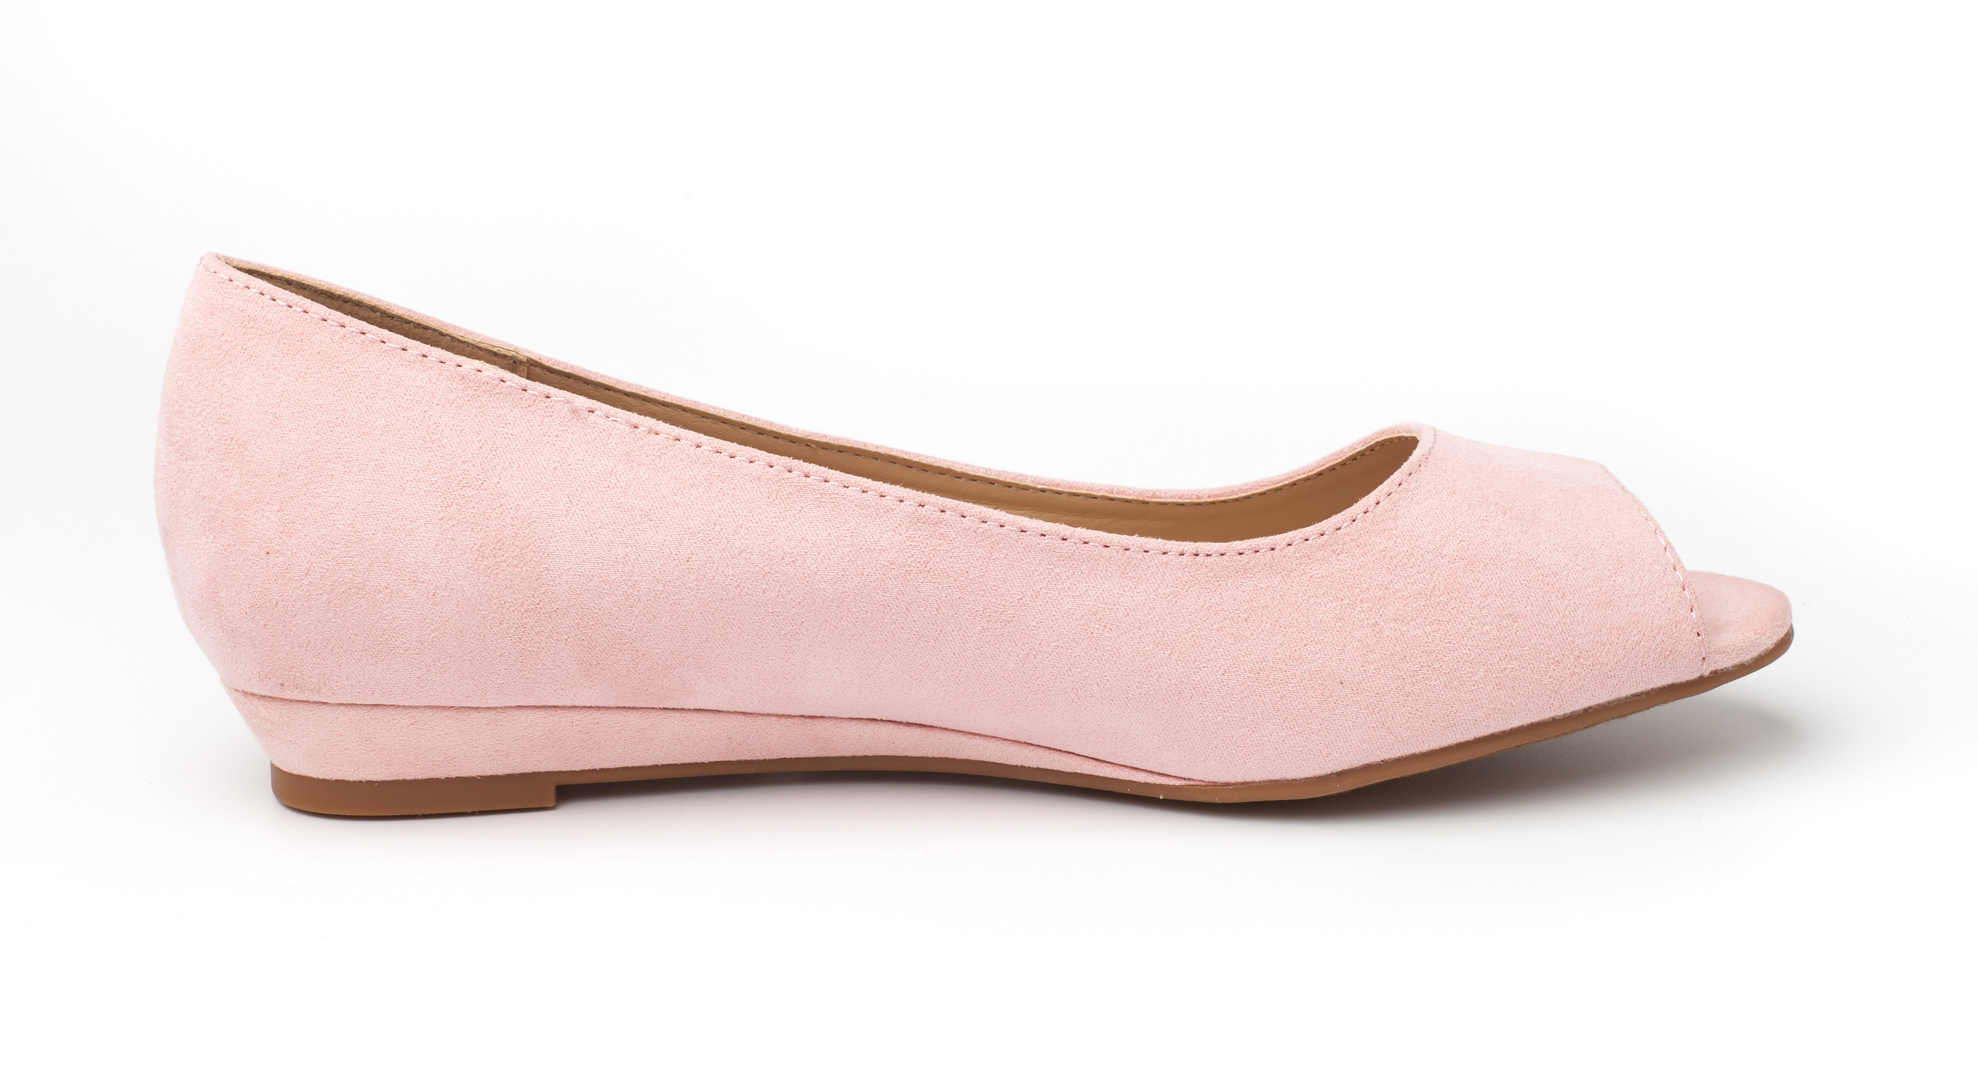 DREAM-PAIRS-Womens-Ballet-Flats-Low-Heel-Open-Toe-Slip-On-Dress-Flat-Shoes thumbnail 8